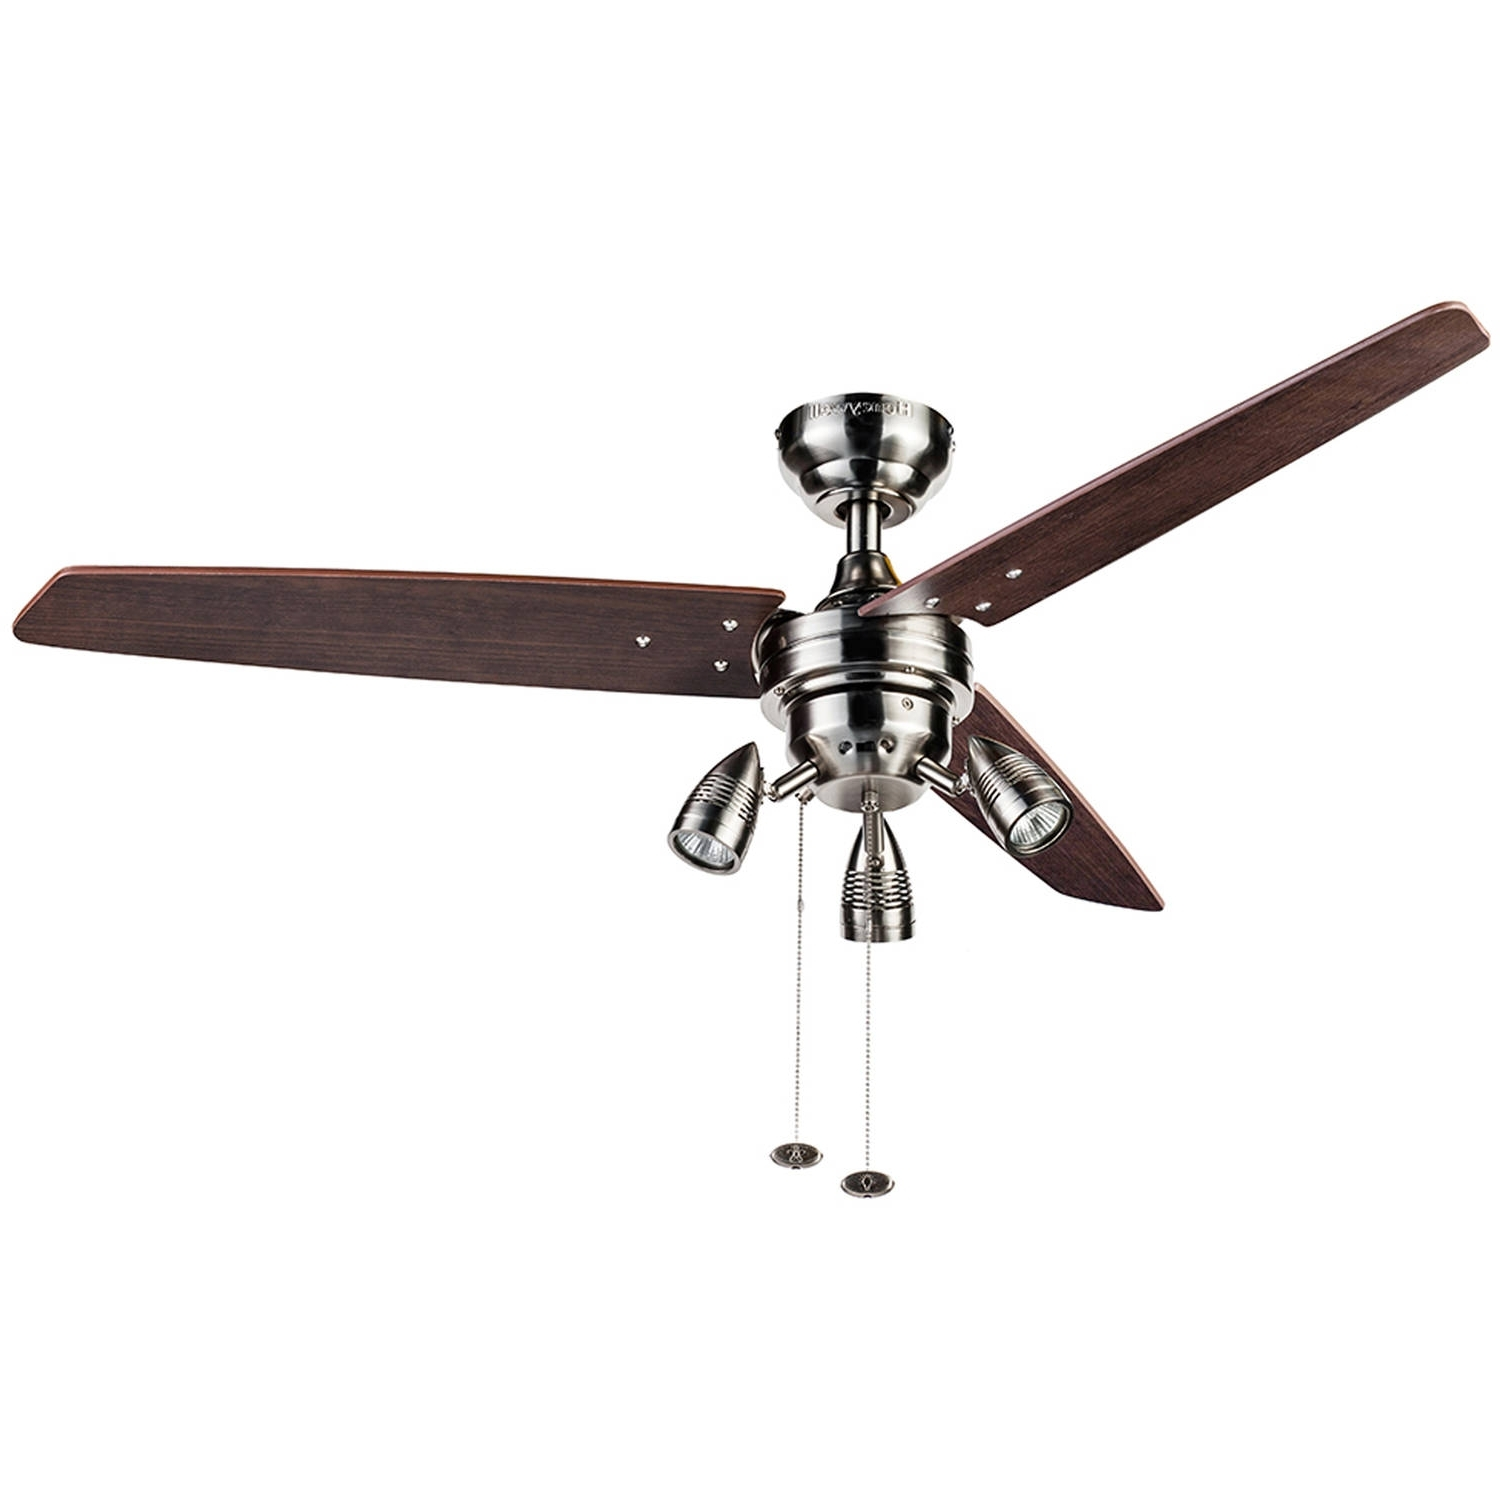 Trendy Ceiling: Marvellous Wicker Ceiling Fans Design Coastal Style Ceiling Intended For Wicker Outdoor Ceiling Fans (View 11 of 20)